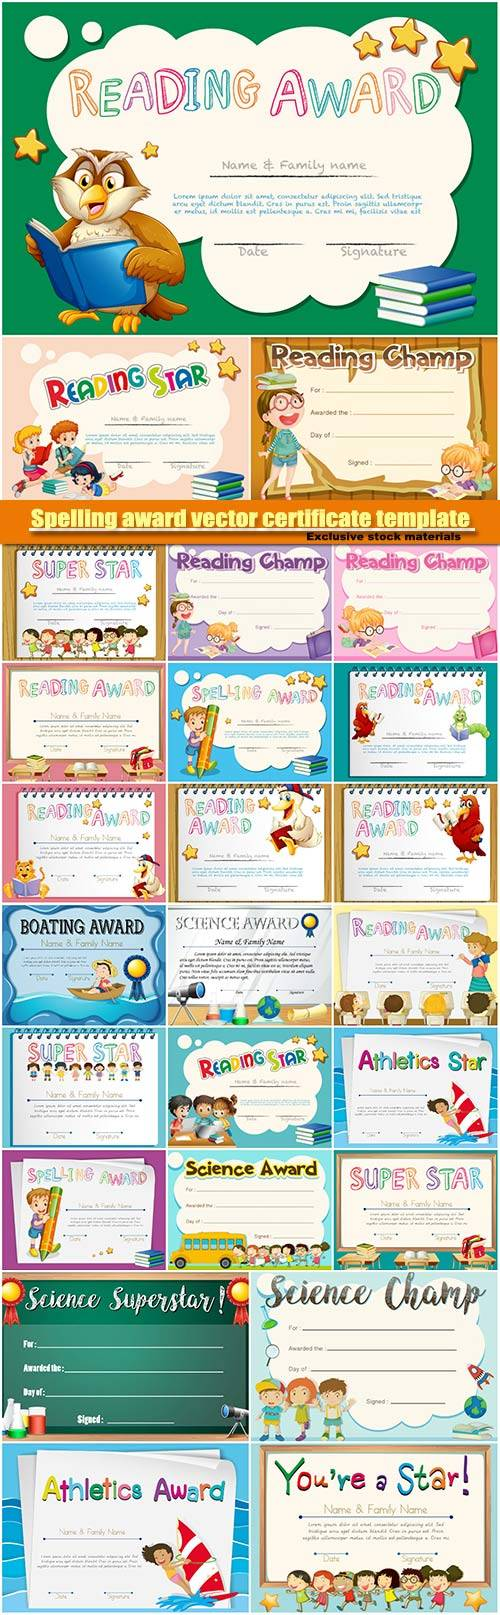 Spelling award vector certificate template with kids